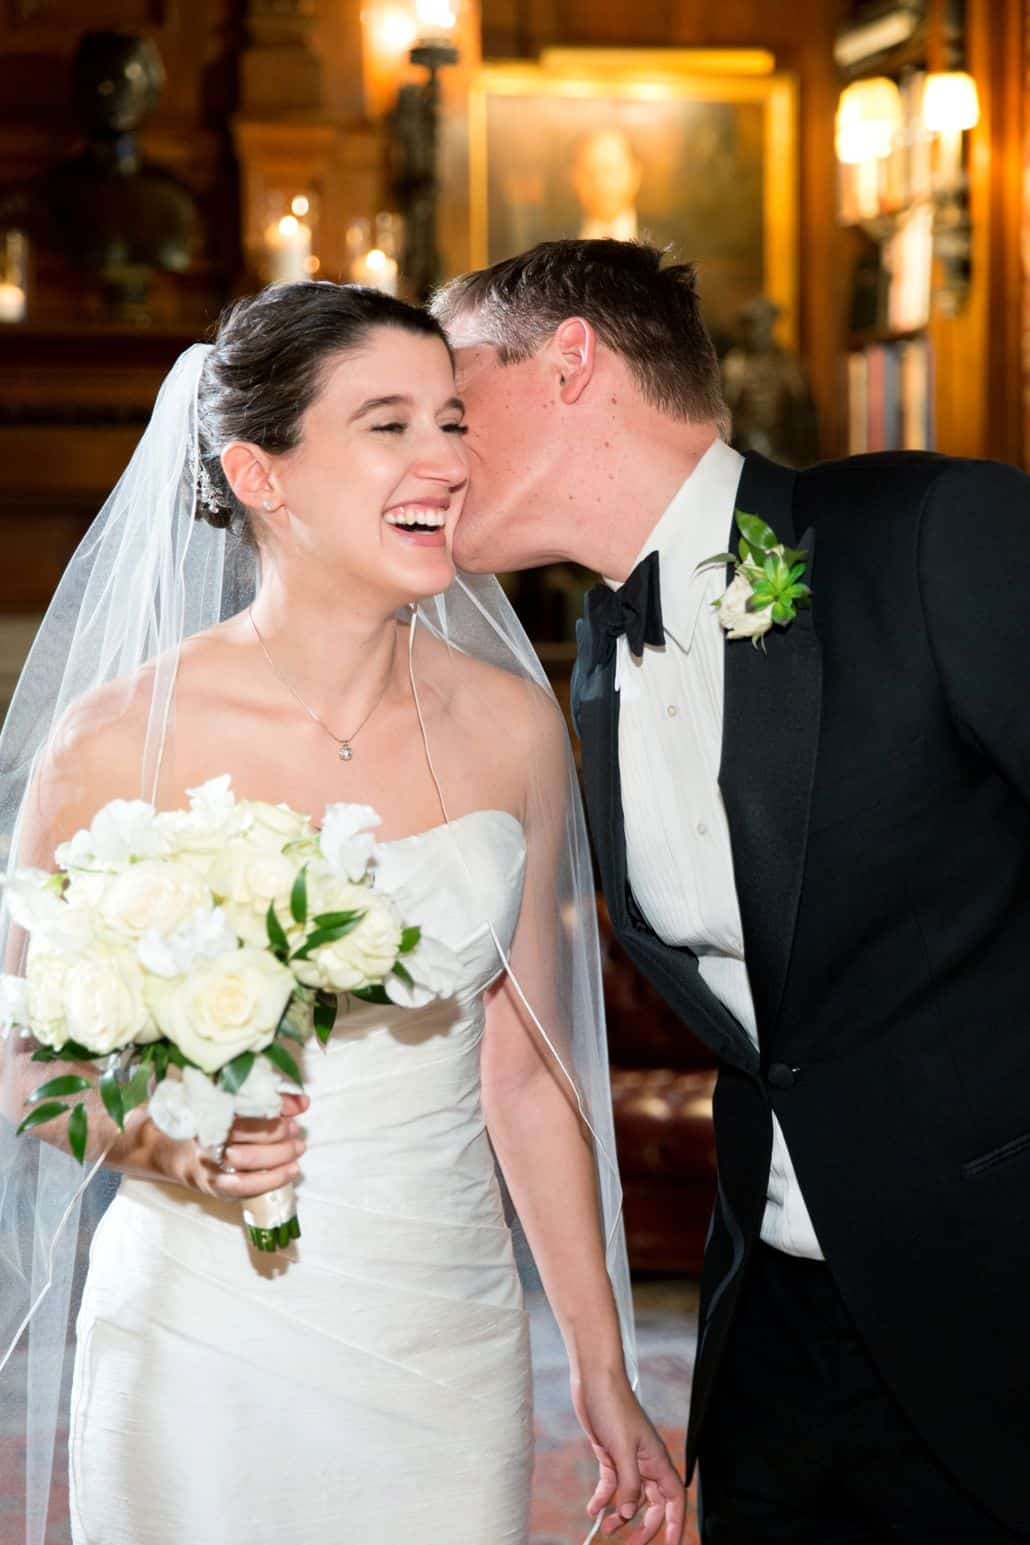 Groom kisses brides cheek as she smiles at Lotos Club Wedding in NYC ...